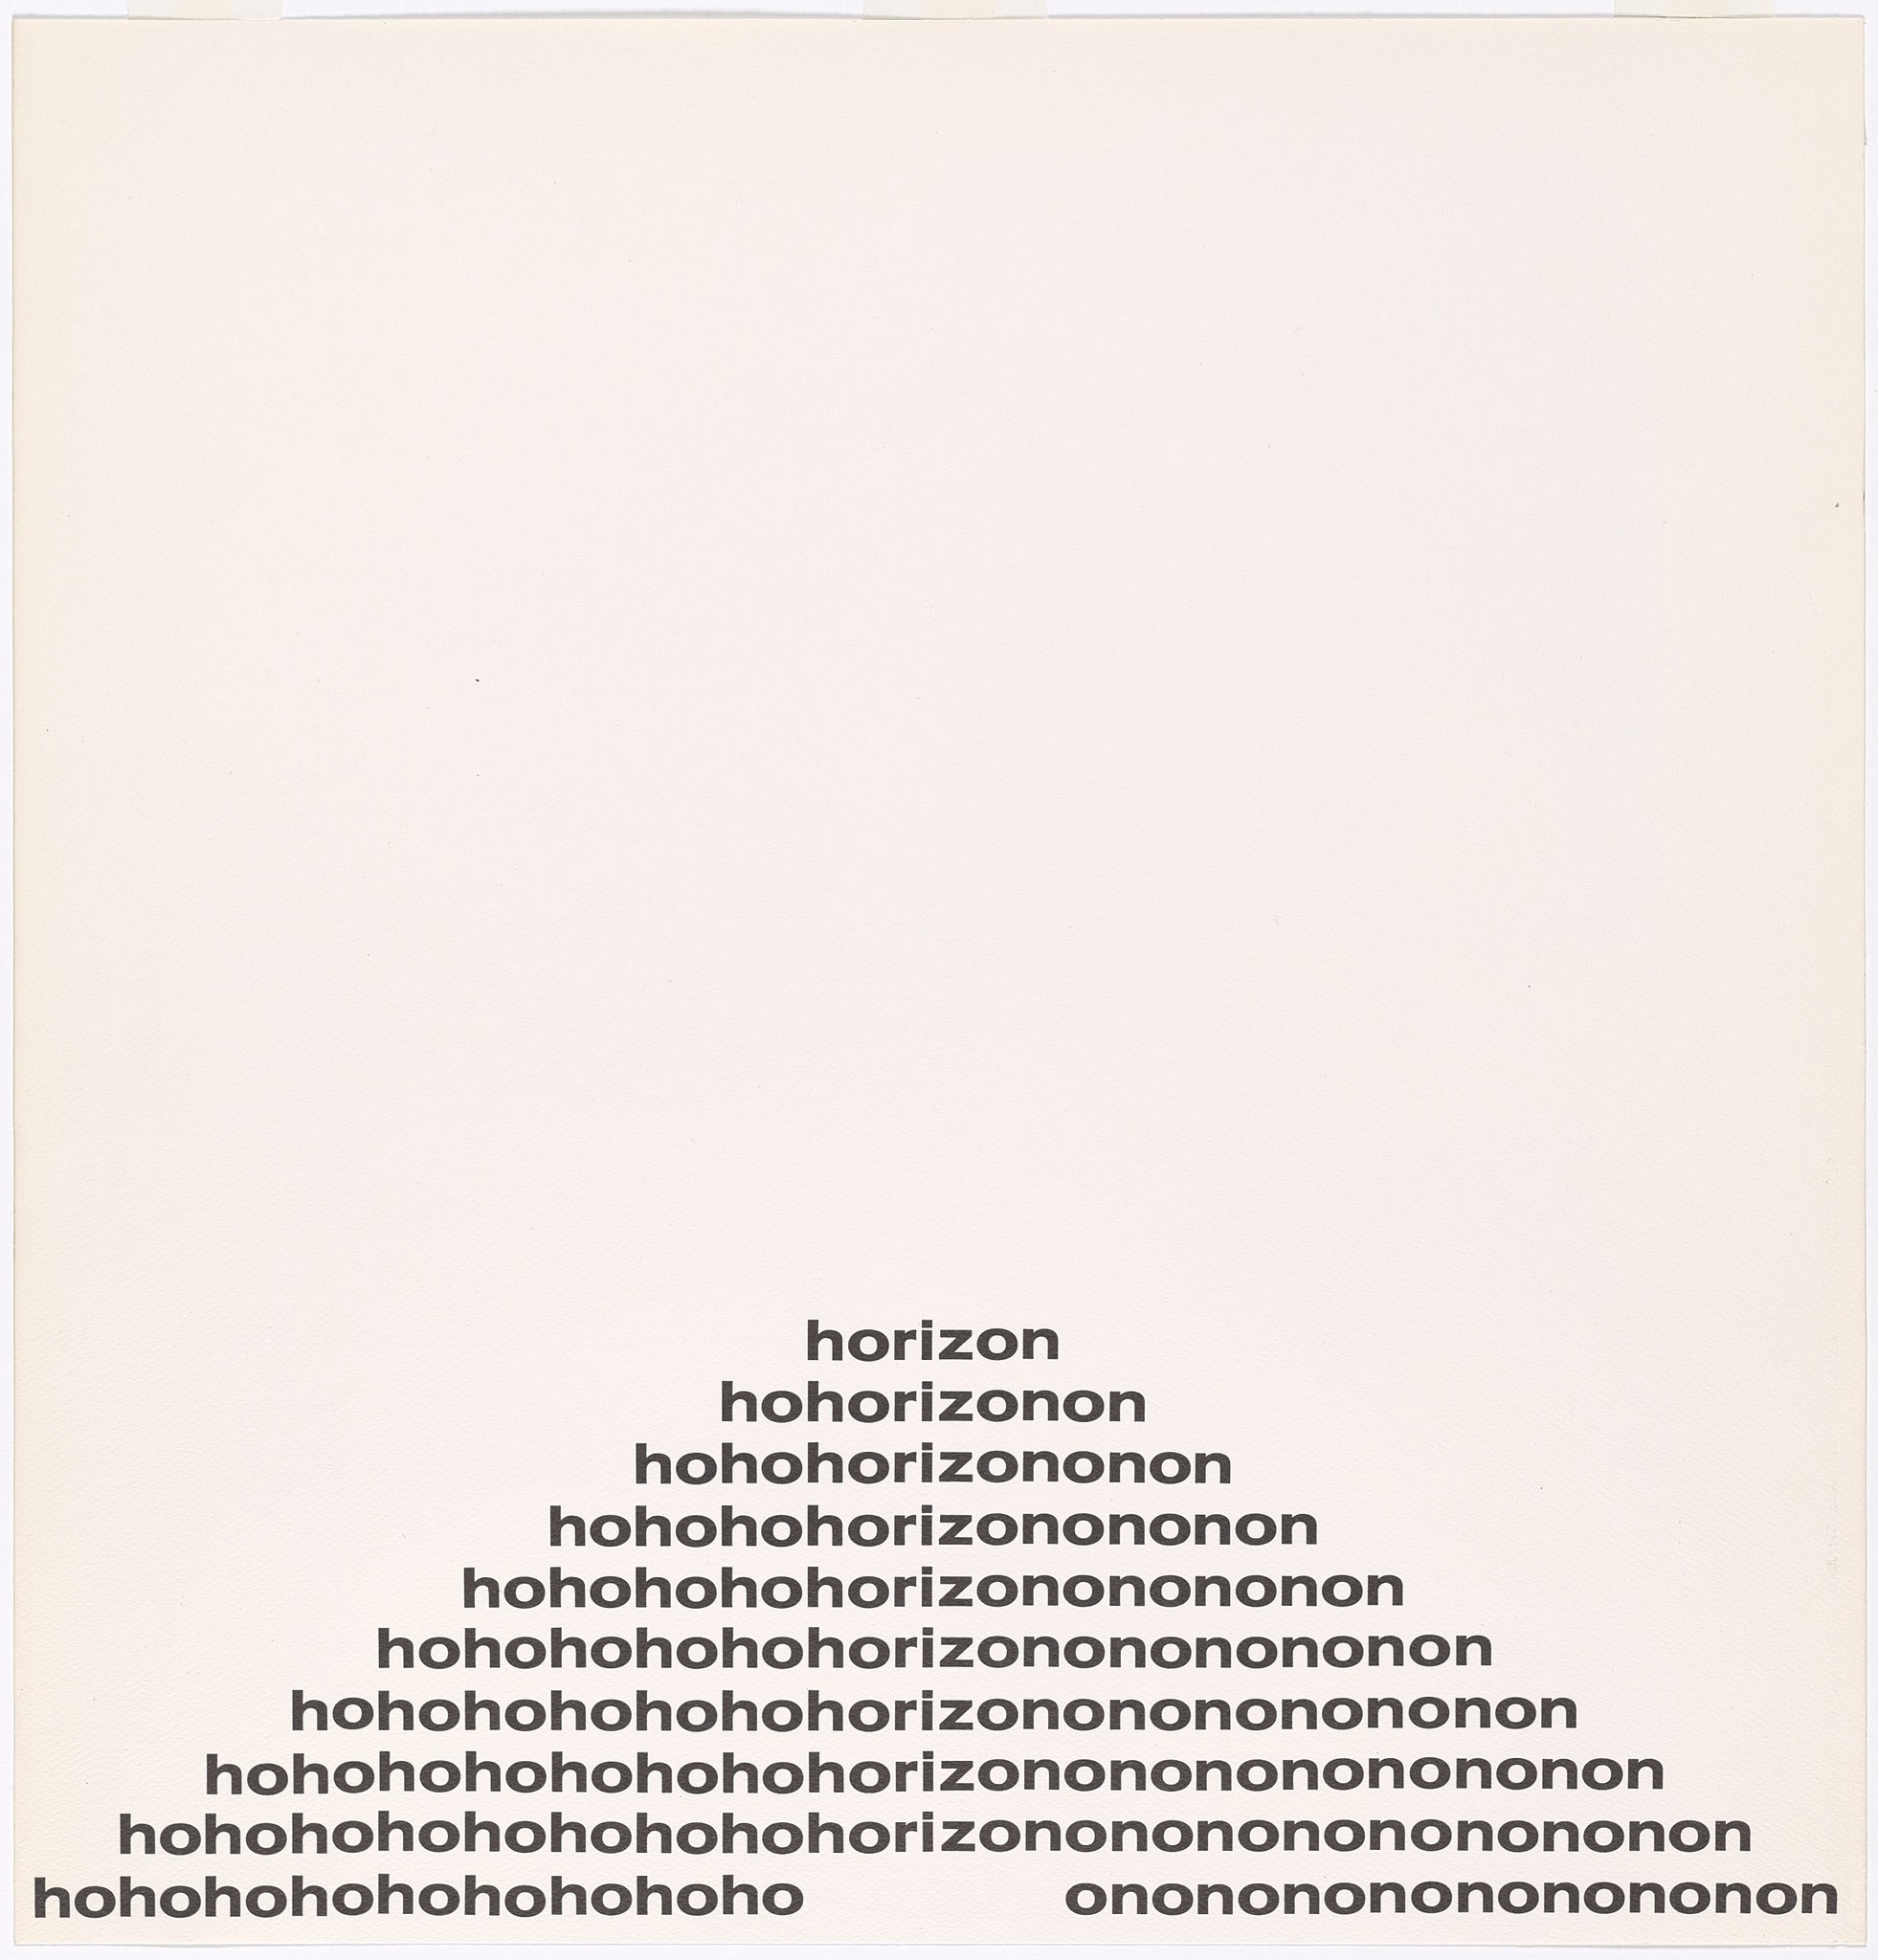 """Ho/Horizon/On,"" by Ian Hamilton Finlay, from an exhibition on concrete poetry at the Getty Research Institute."